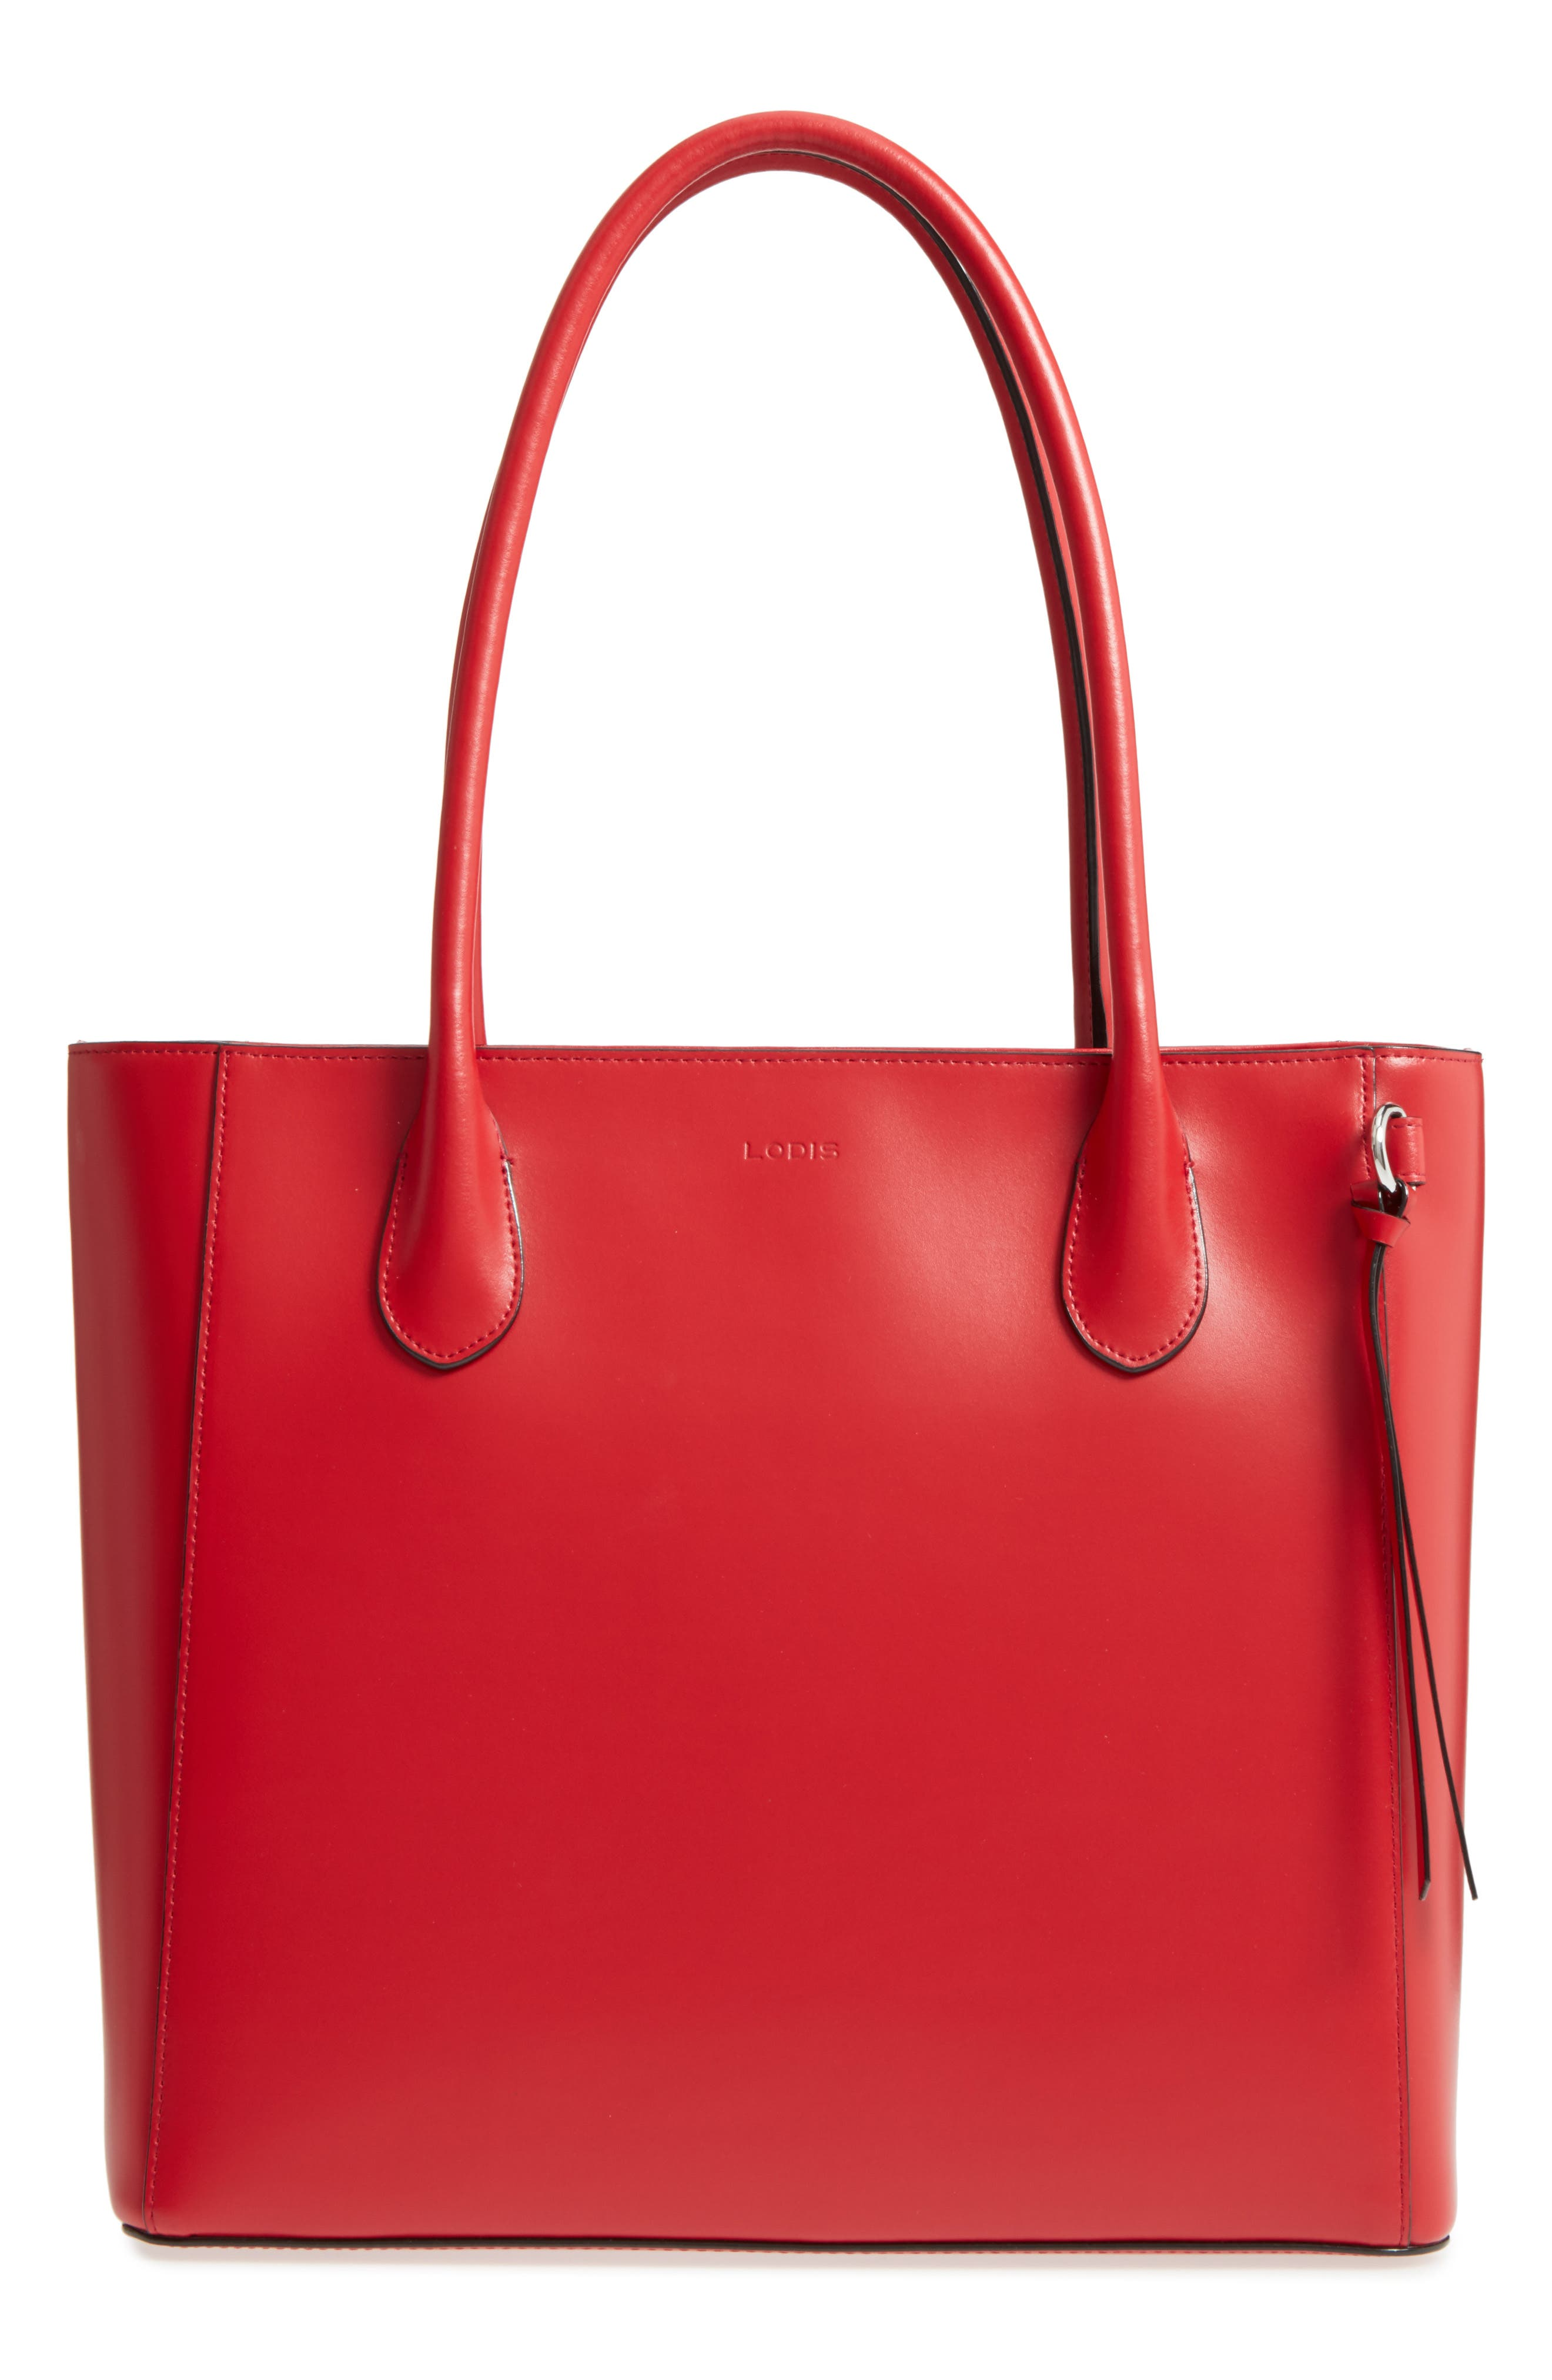 Alternate Image 1 Selected - LODIS Los Angeles Cecily RFID Leather Tote